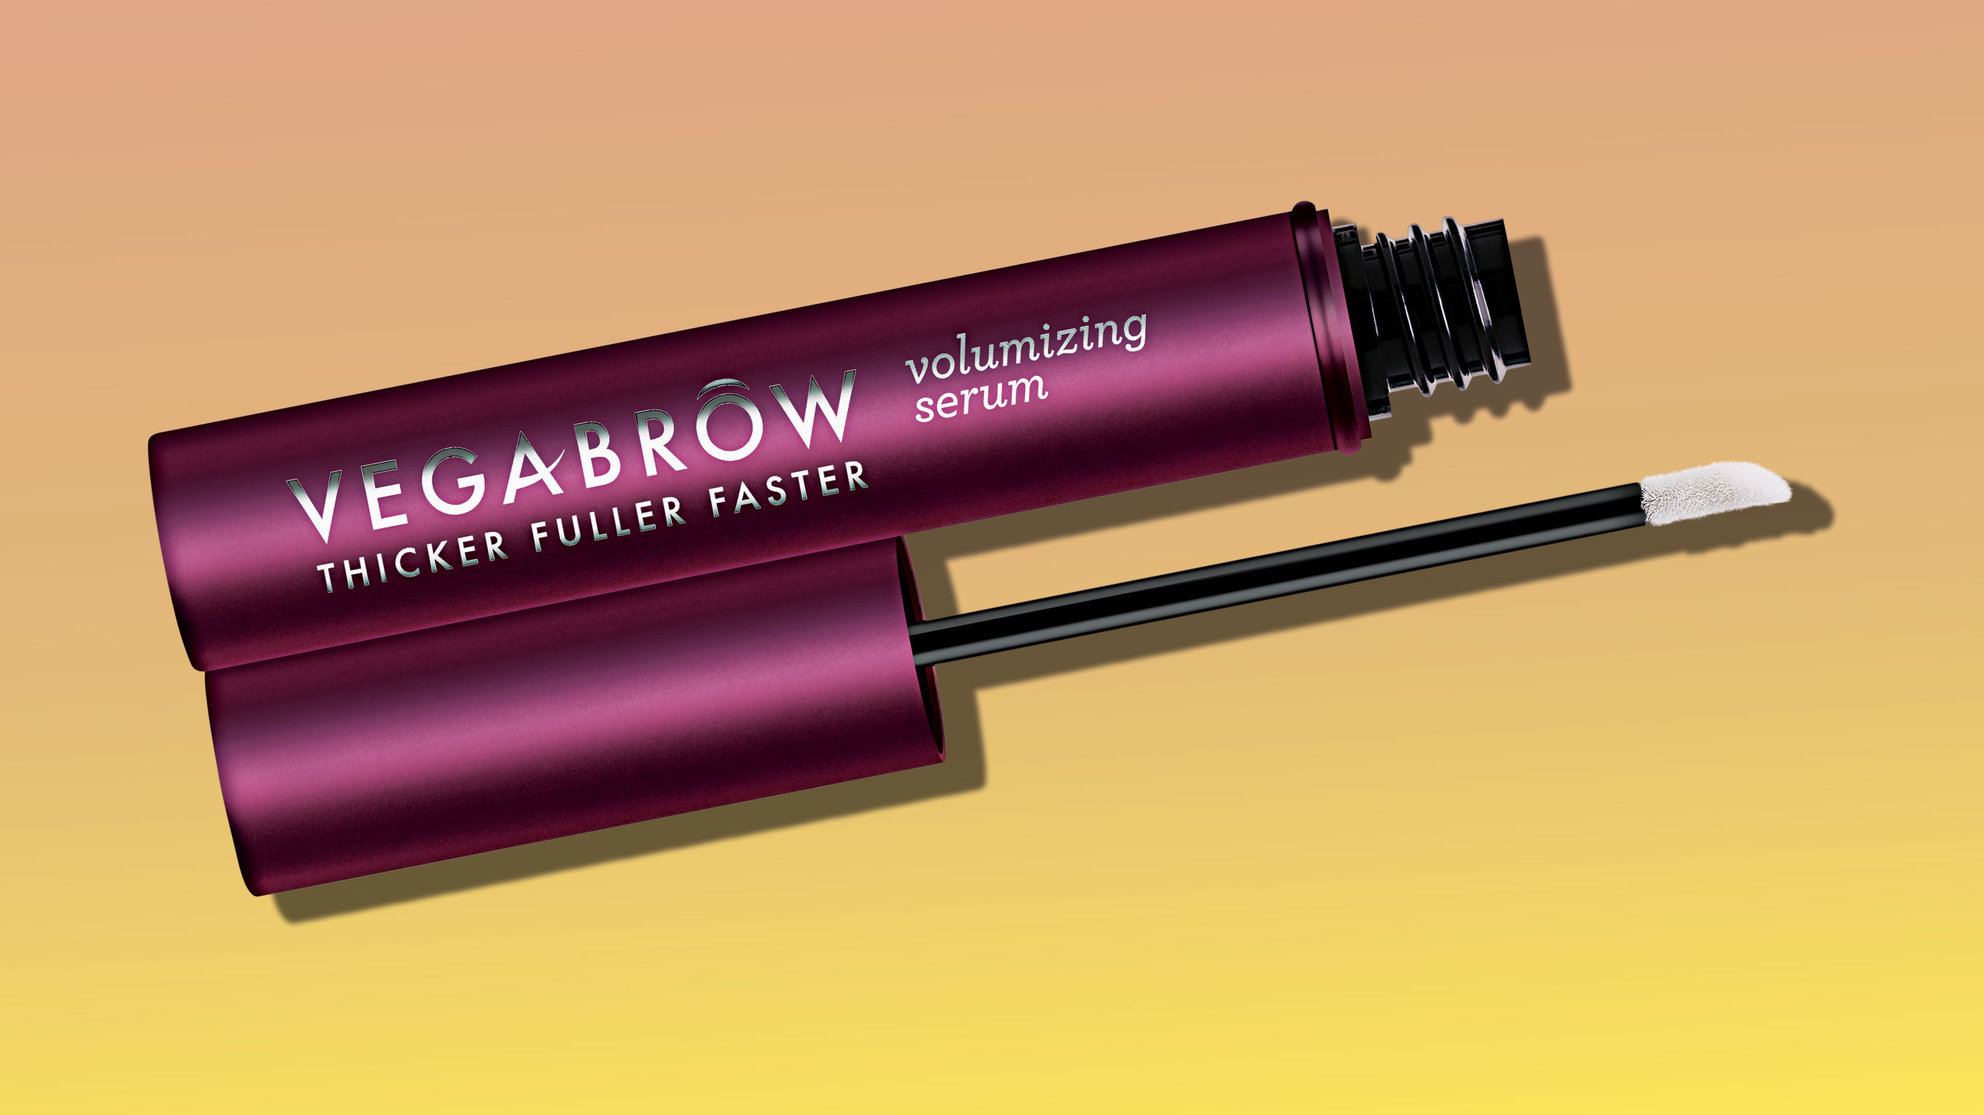 The Best Eyebrow Growth Serums According To Dermatologists Health